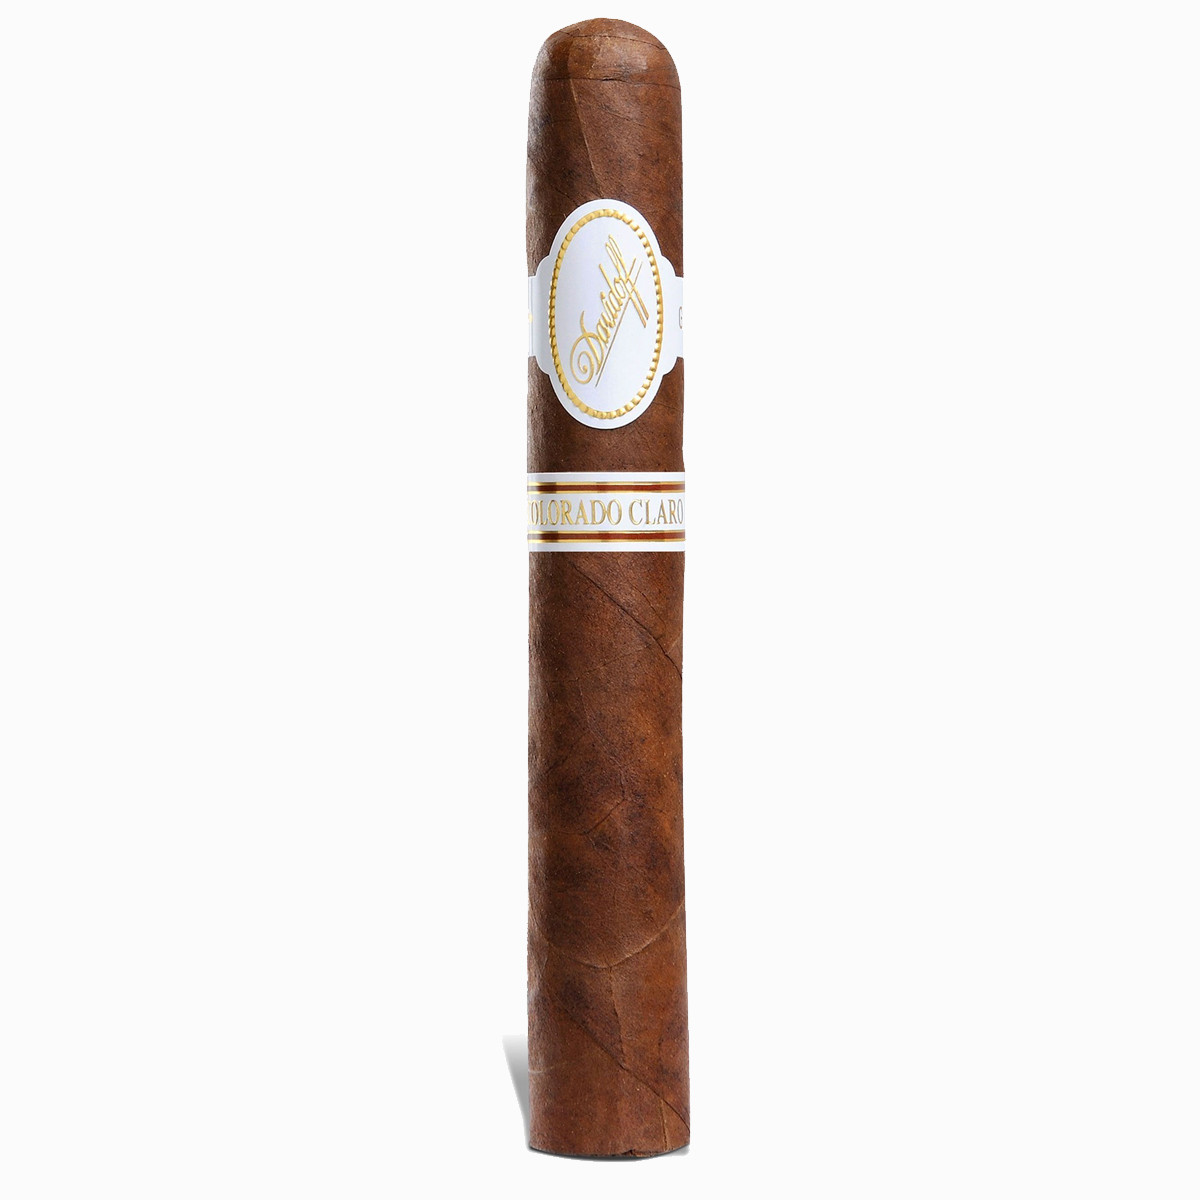 Davidoff Colorado Claro Aniversario No. 3 (6x50 / Single)